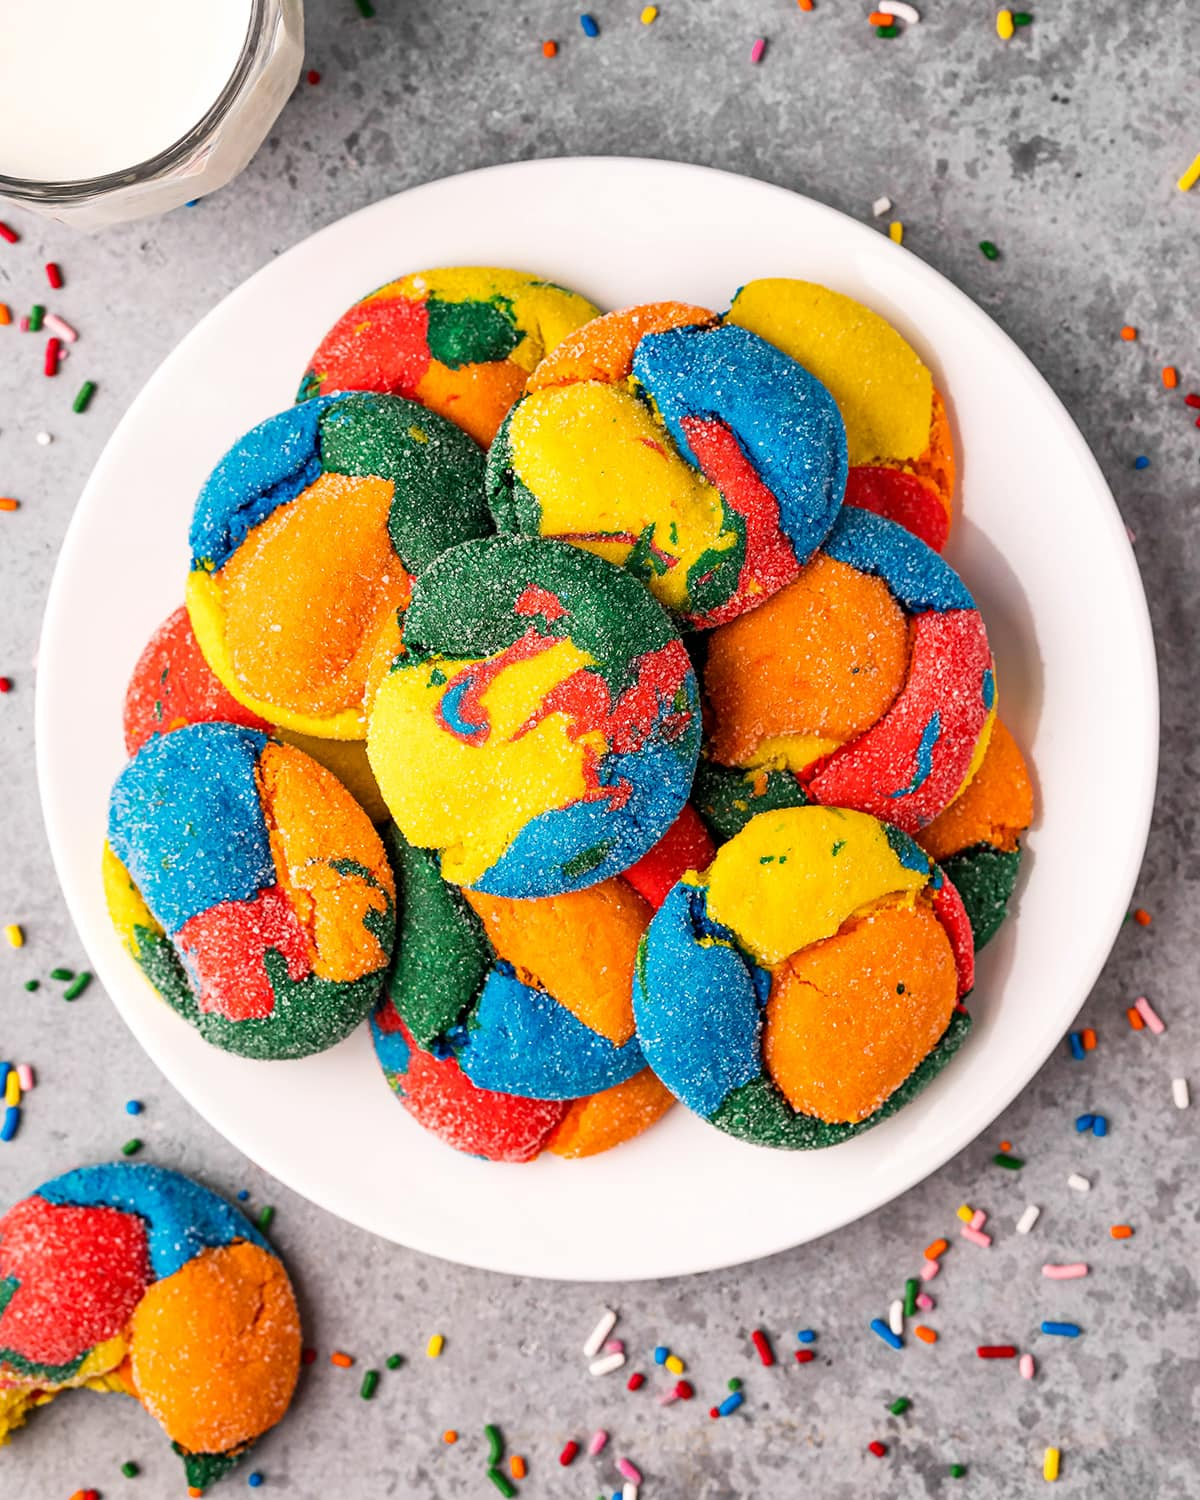 A pile of rainbow cake mix cookies. The cookies are swirled with red, orange, yellow, green, and blue colors, and you can see granulated sugar on them.